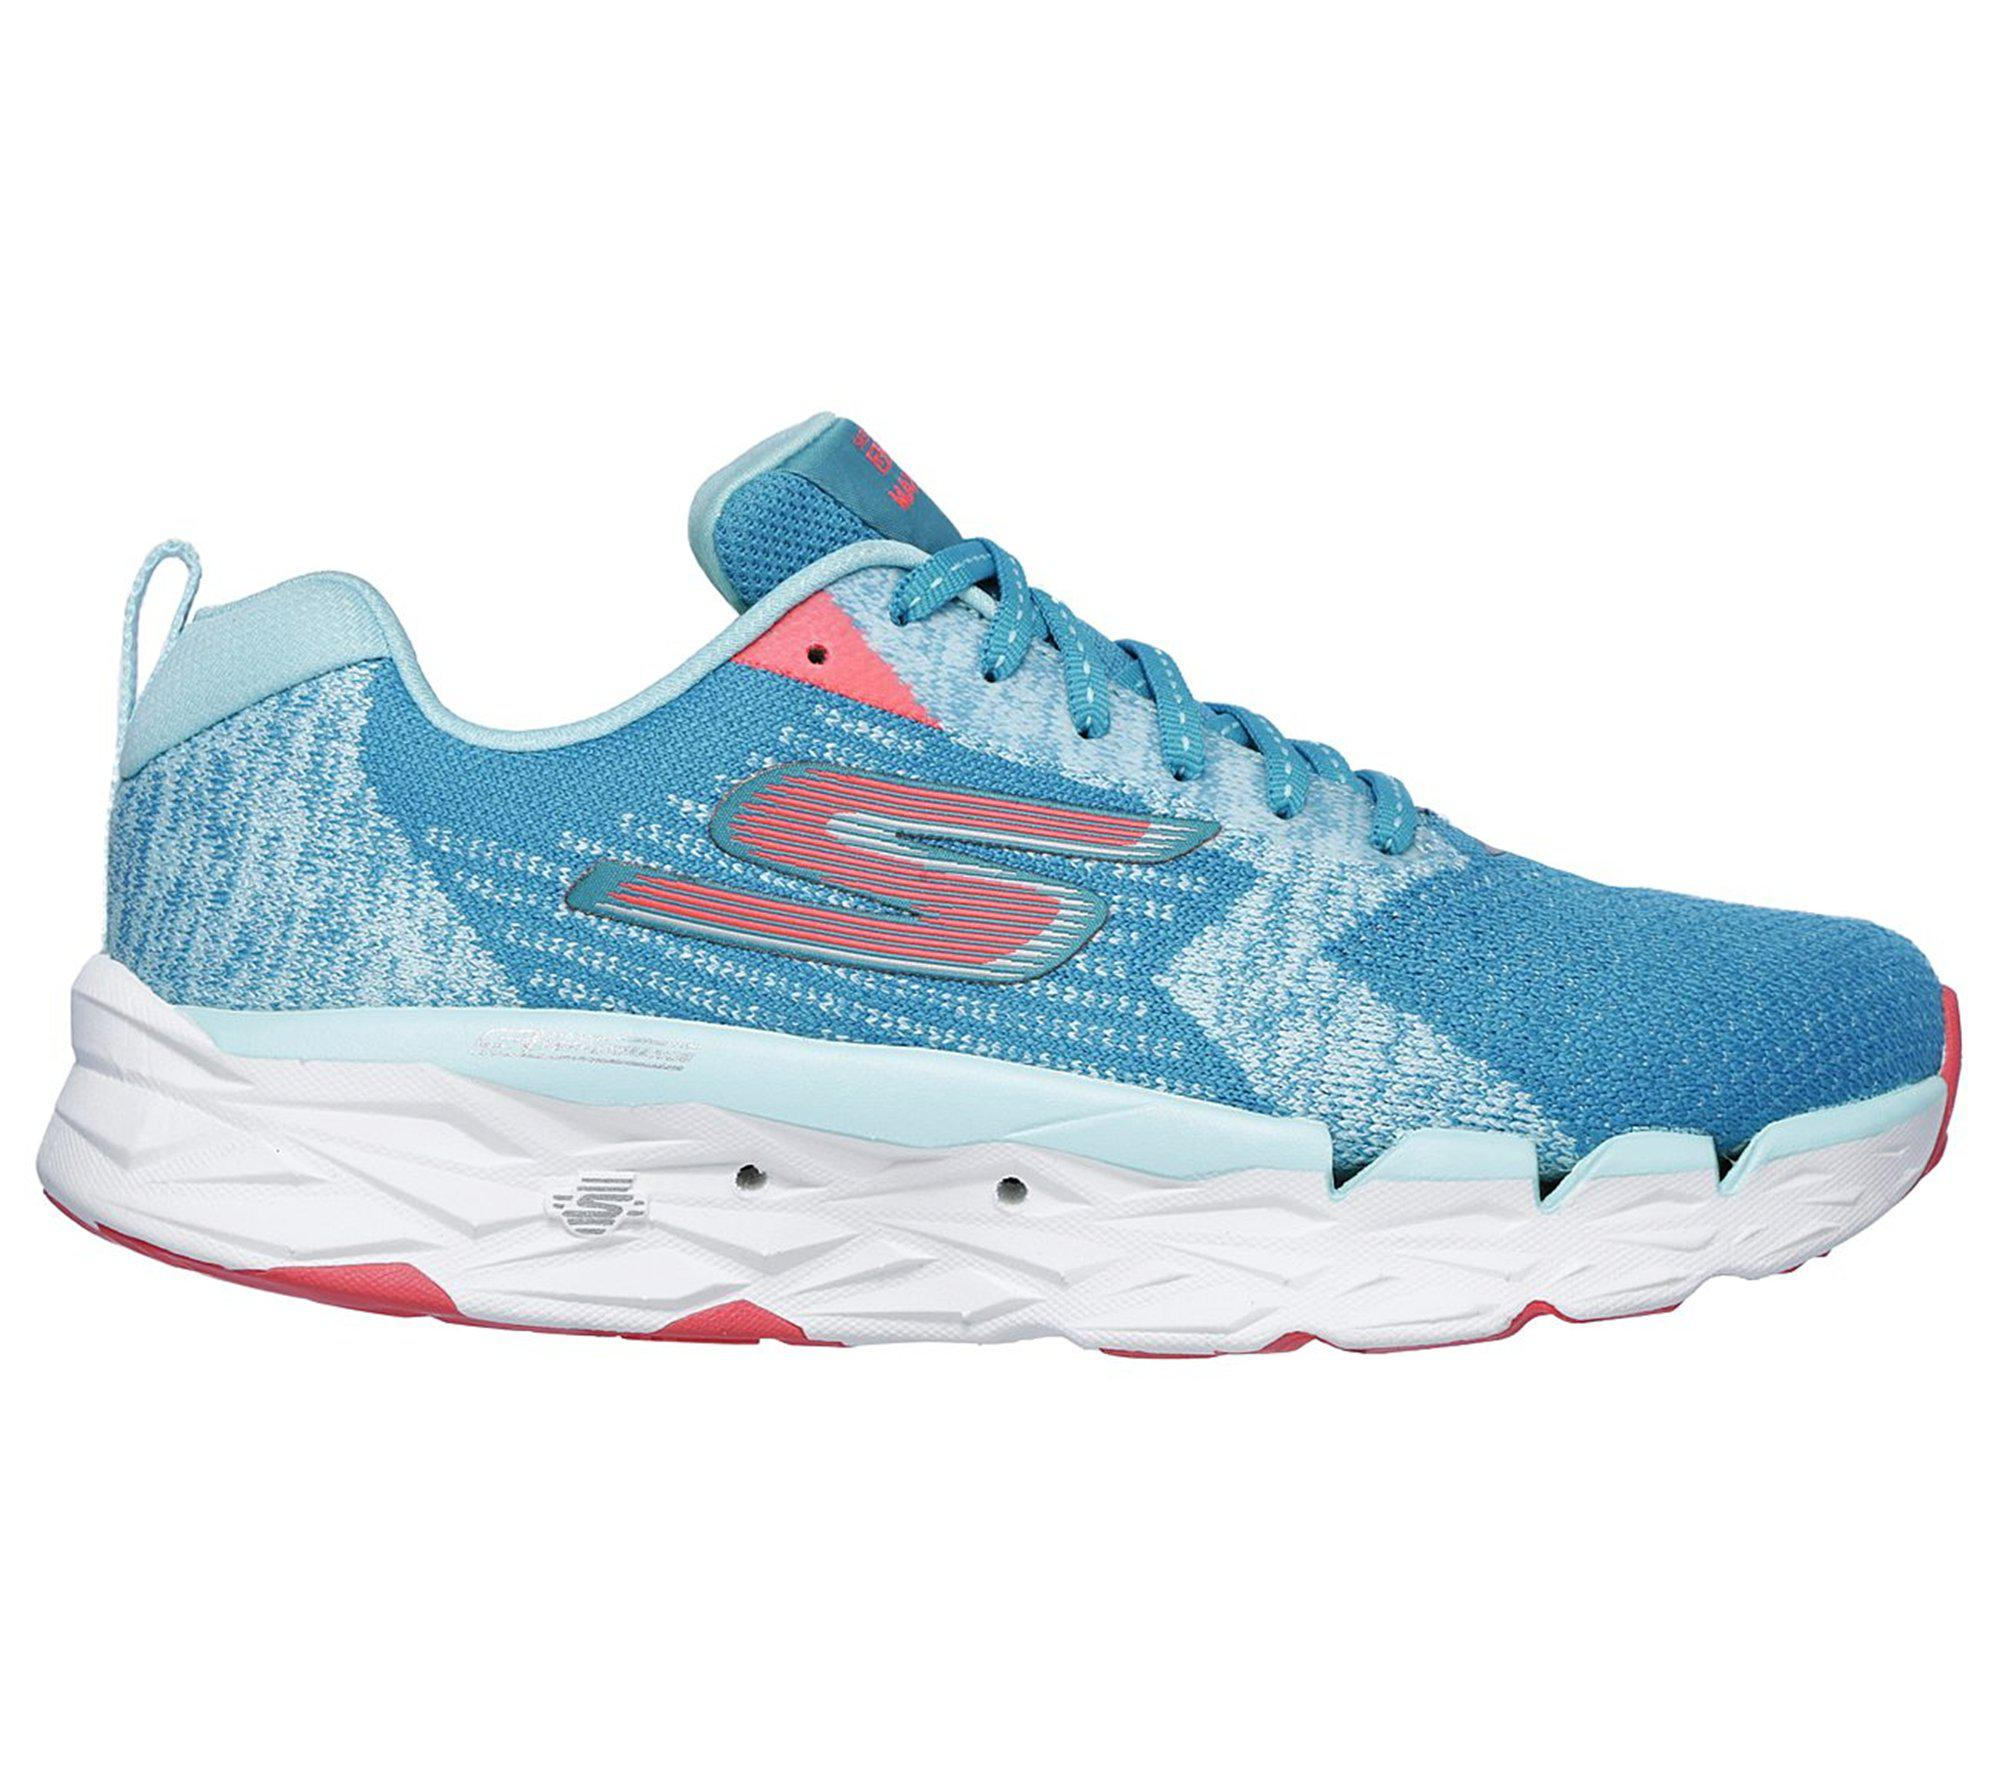 Terapia calcetines insecto  Skechers Gorun Maxroad 3 Ultra in Pink Blue (Blue) - Lyst